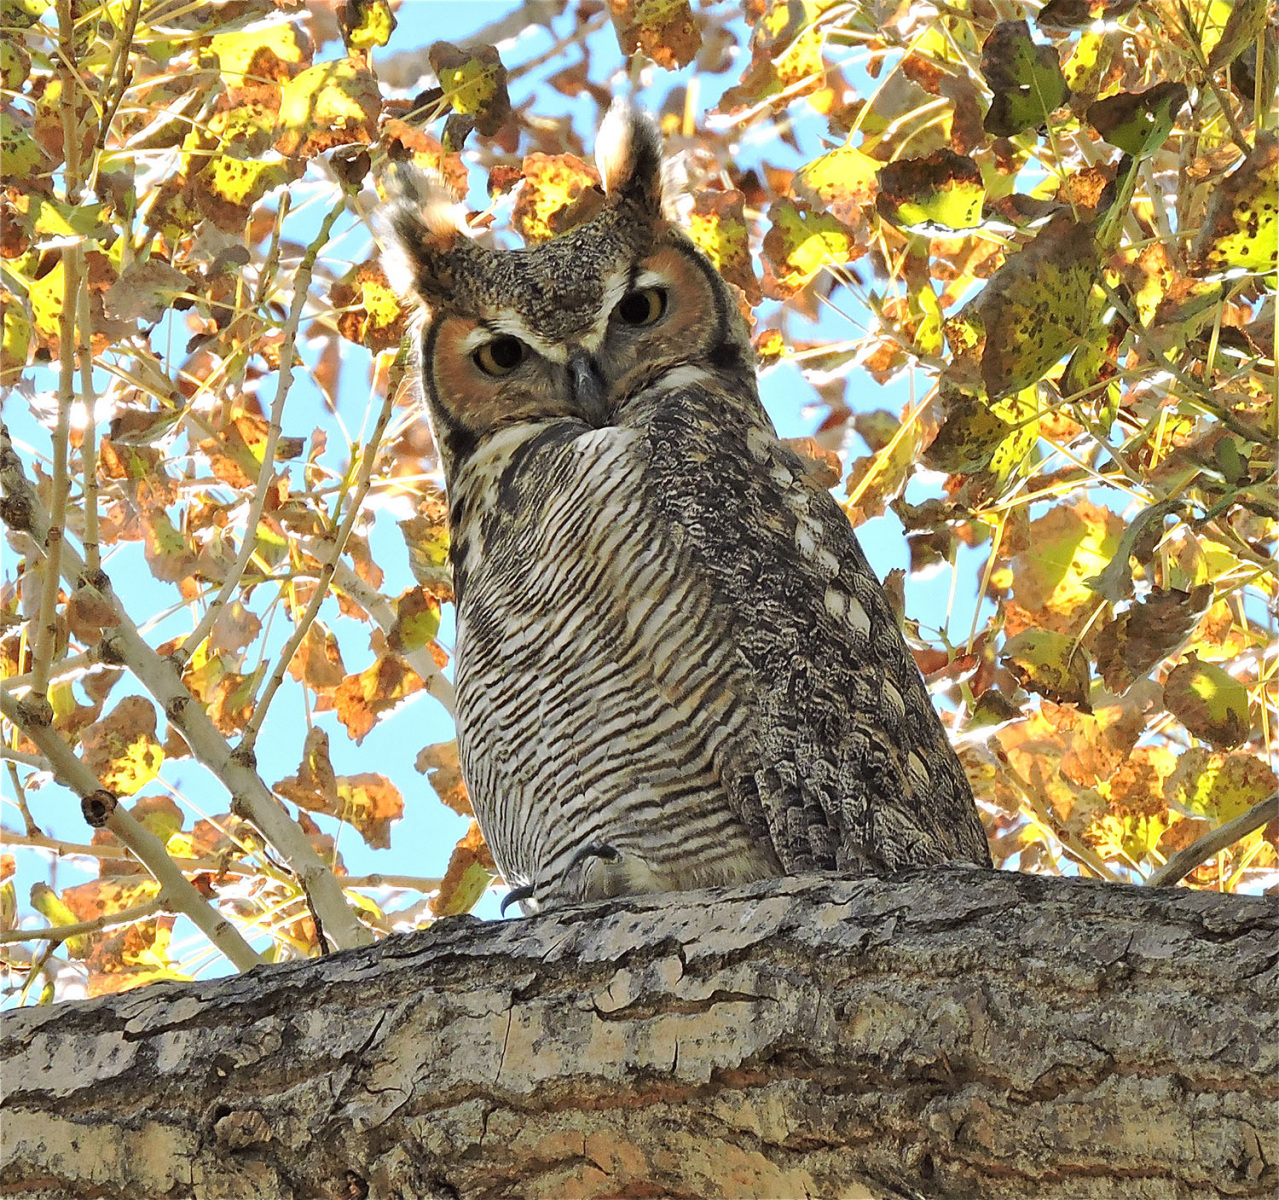 Great Horned Owl by John Williams